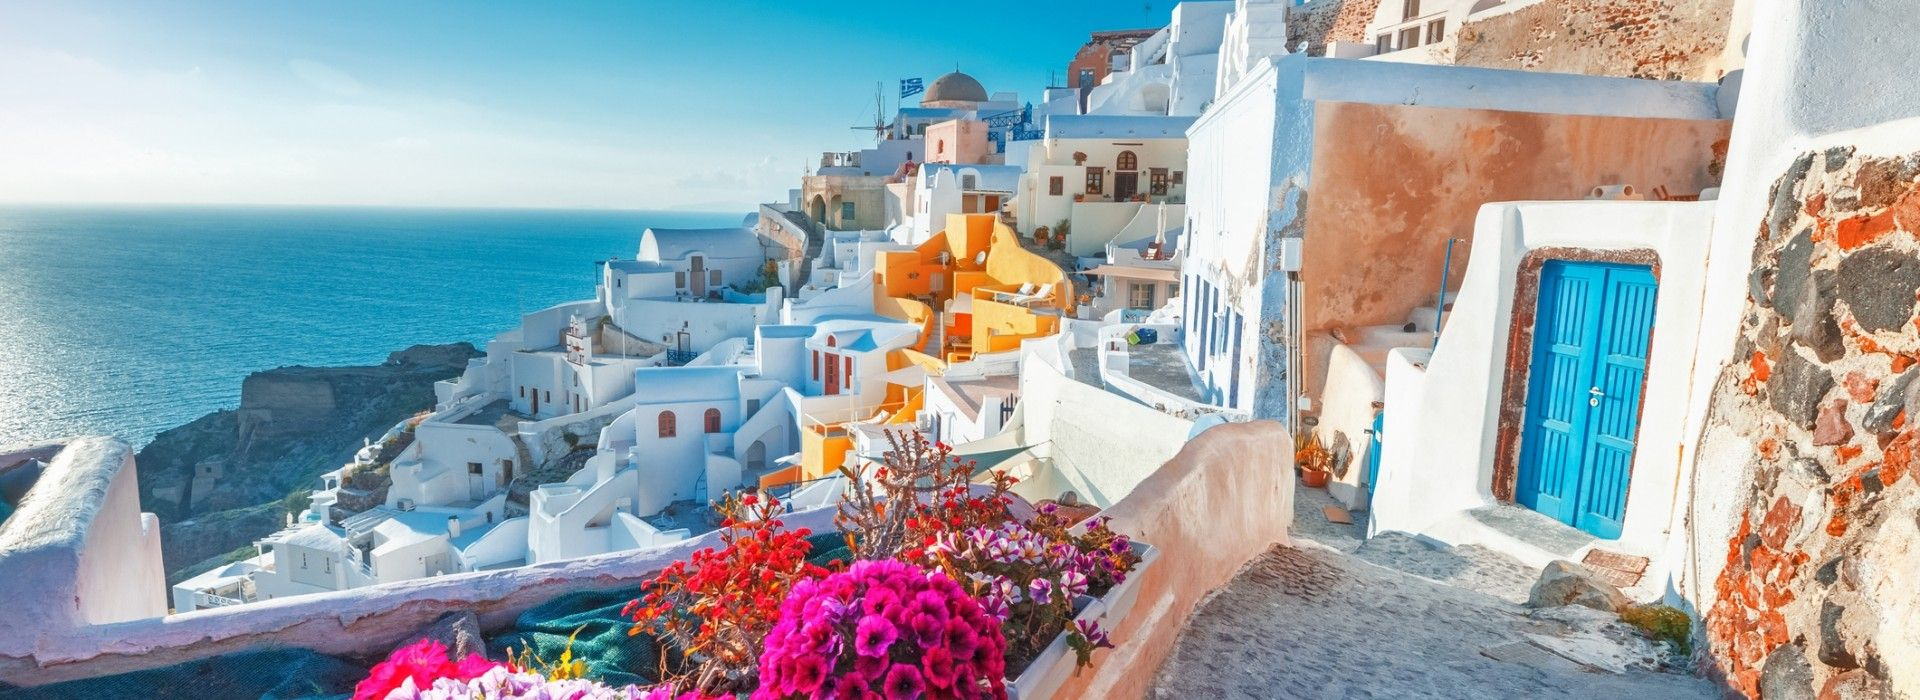 Beach, romance, getaways and relaxation Tours in Mediterranean